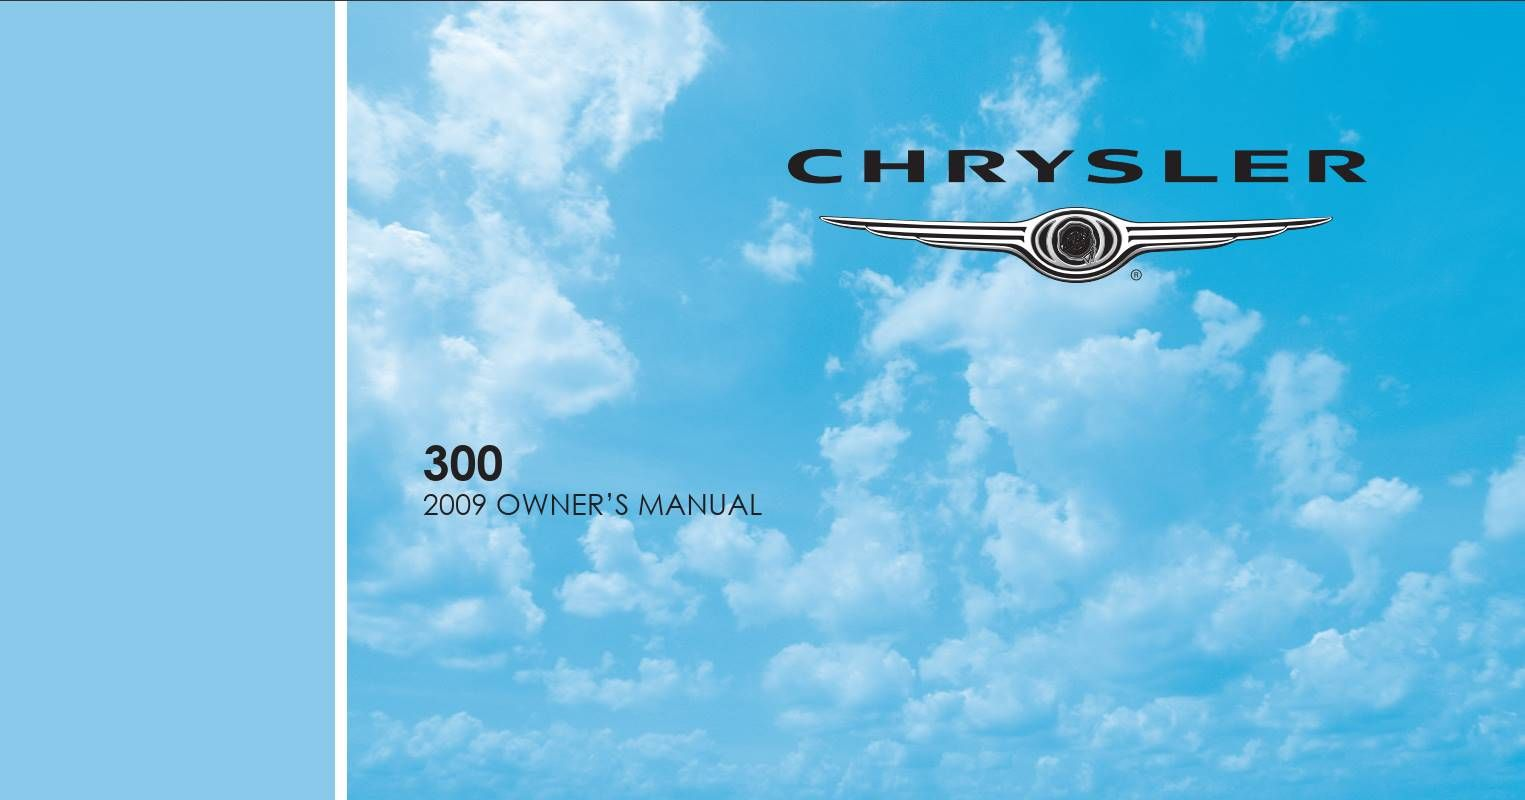 Chrysler 300 2009 Owner S Manual Has Been Published On Procarmanuals Com Https Procarmanuals Com Chrysler Chrysler Sebring Sebring Convertible Owners Manuals